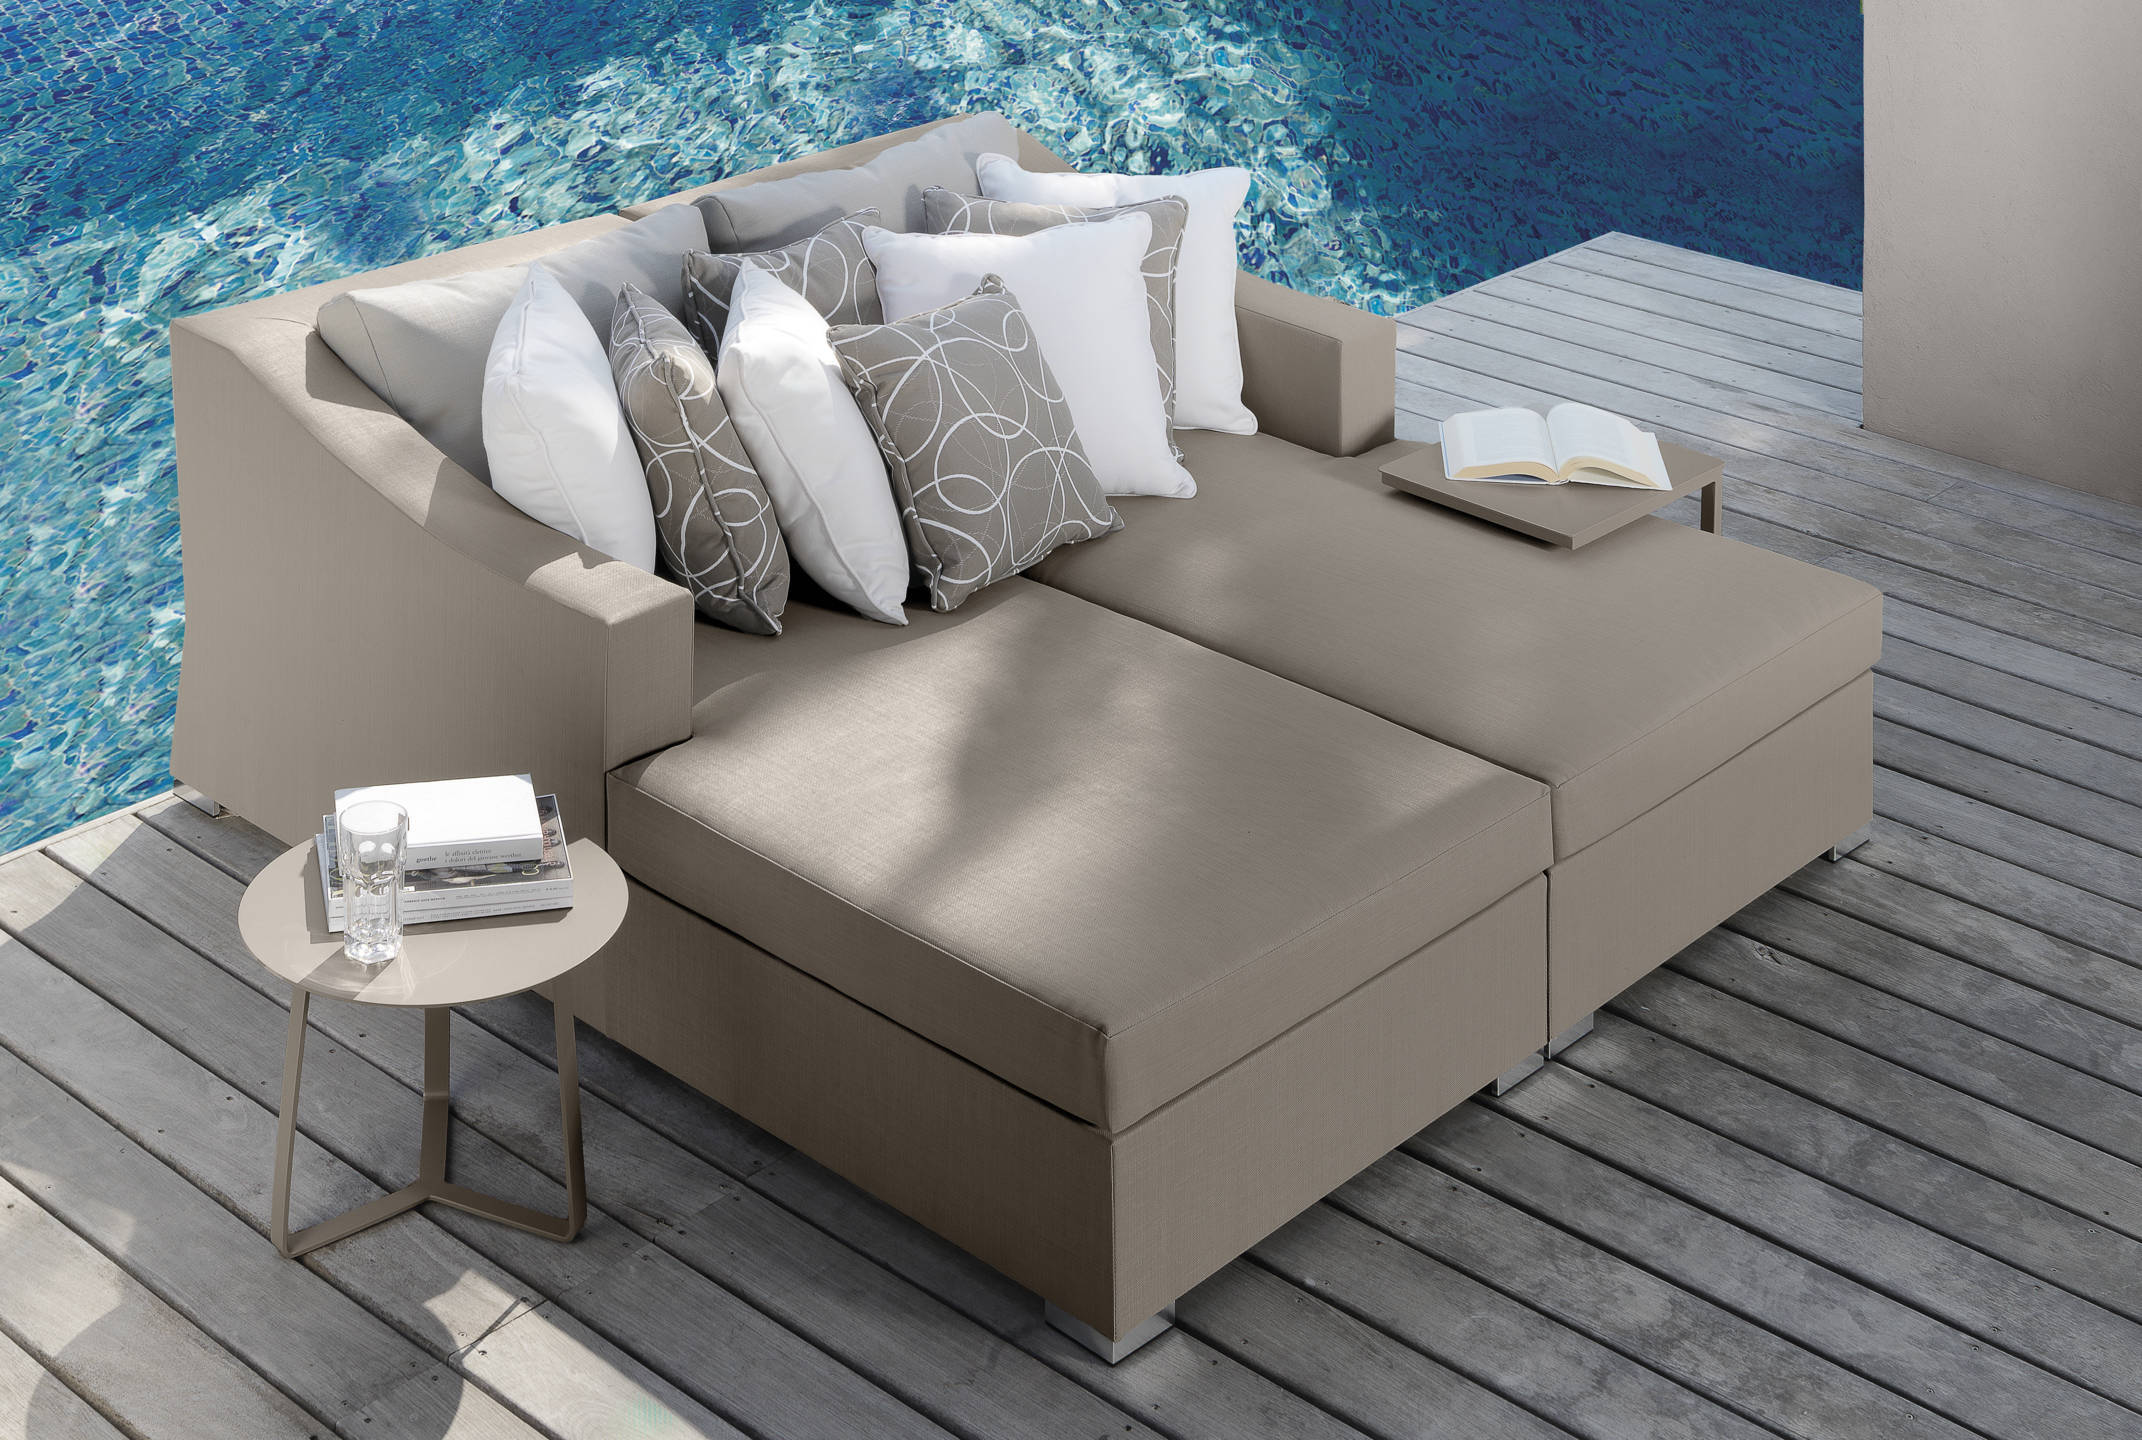 Divani Per Esterni Vendita On Line : Vivereverde sofa lounge sx chiccollection divani per esterni